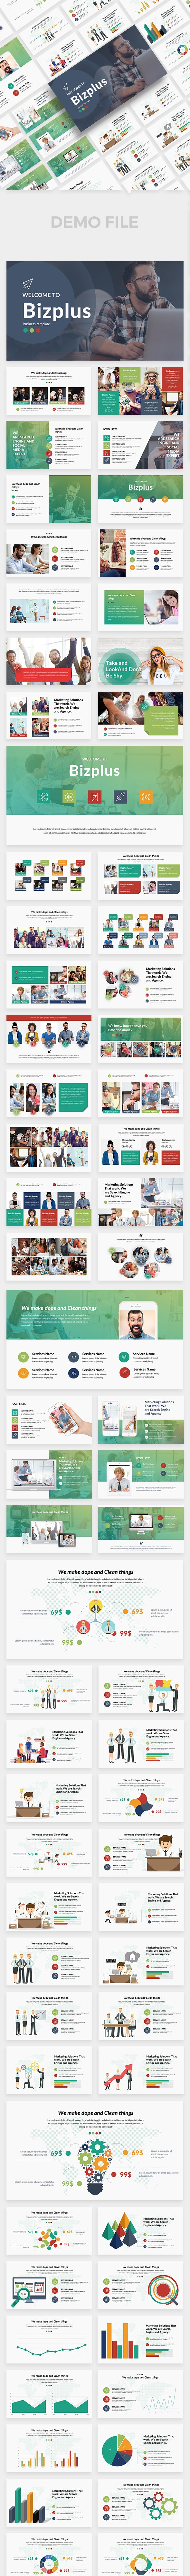 BizPlus Multipurpose Keynote Template - Business Keynote Templates